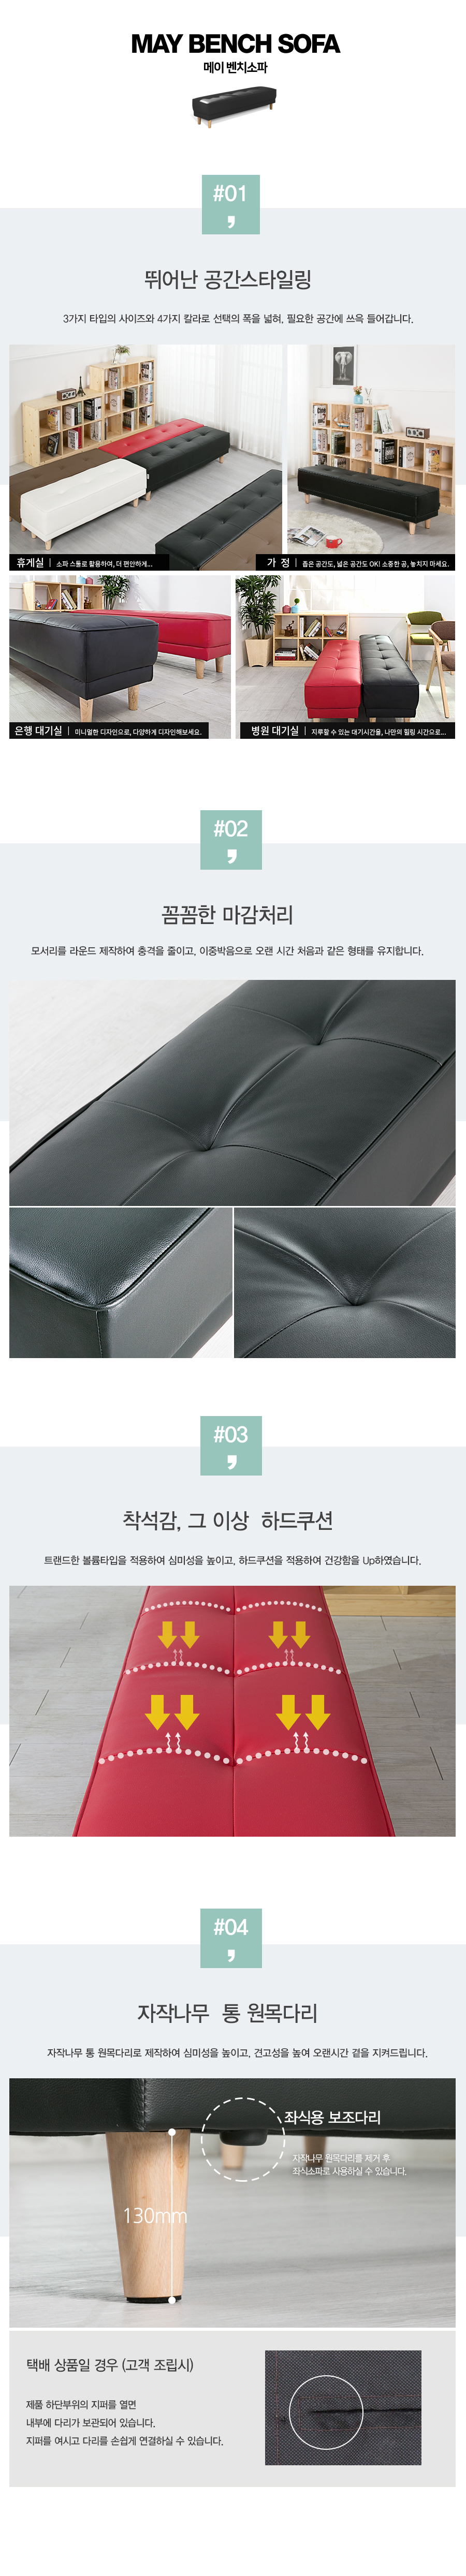 detail_may_sofa.jpg